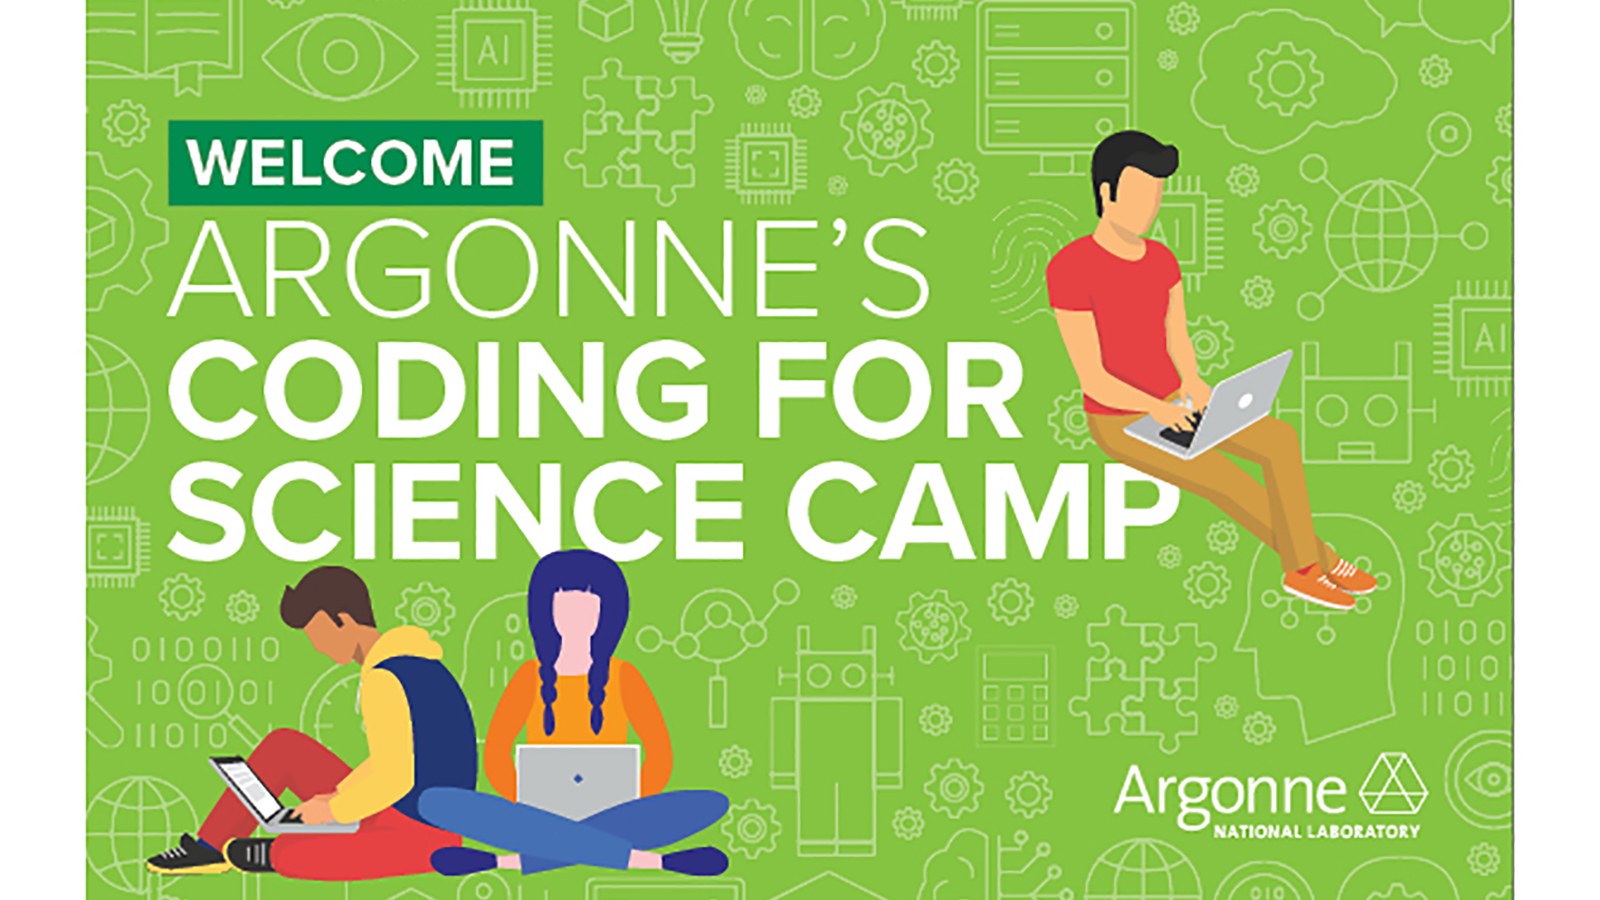 Learning Center instructors created many fun and colorful graphics to welcome students into the Virtual Coding for Science Camp experience. (Image by Argonne National Laboratory.)